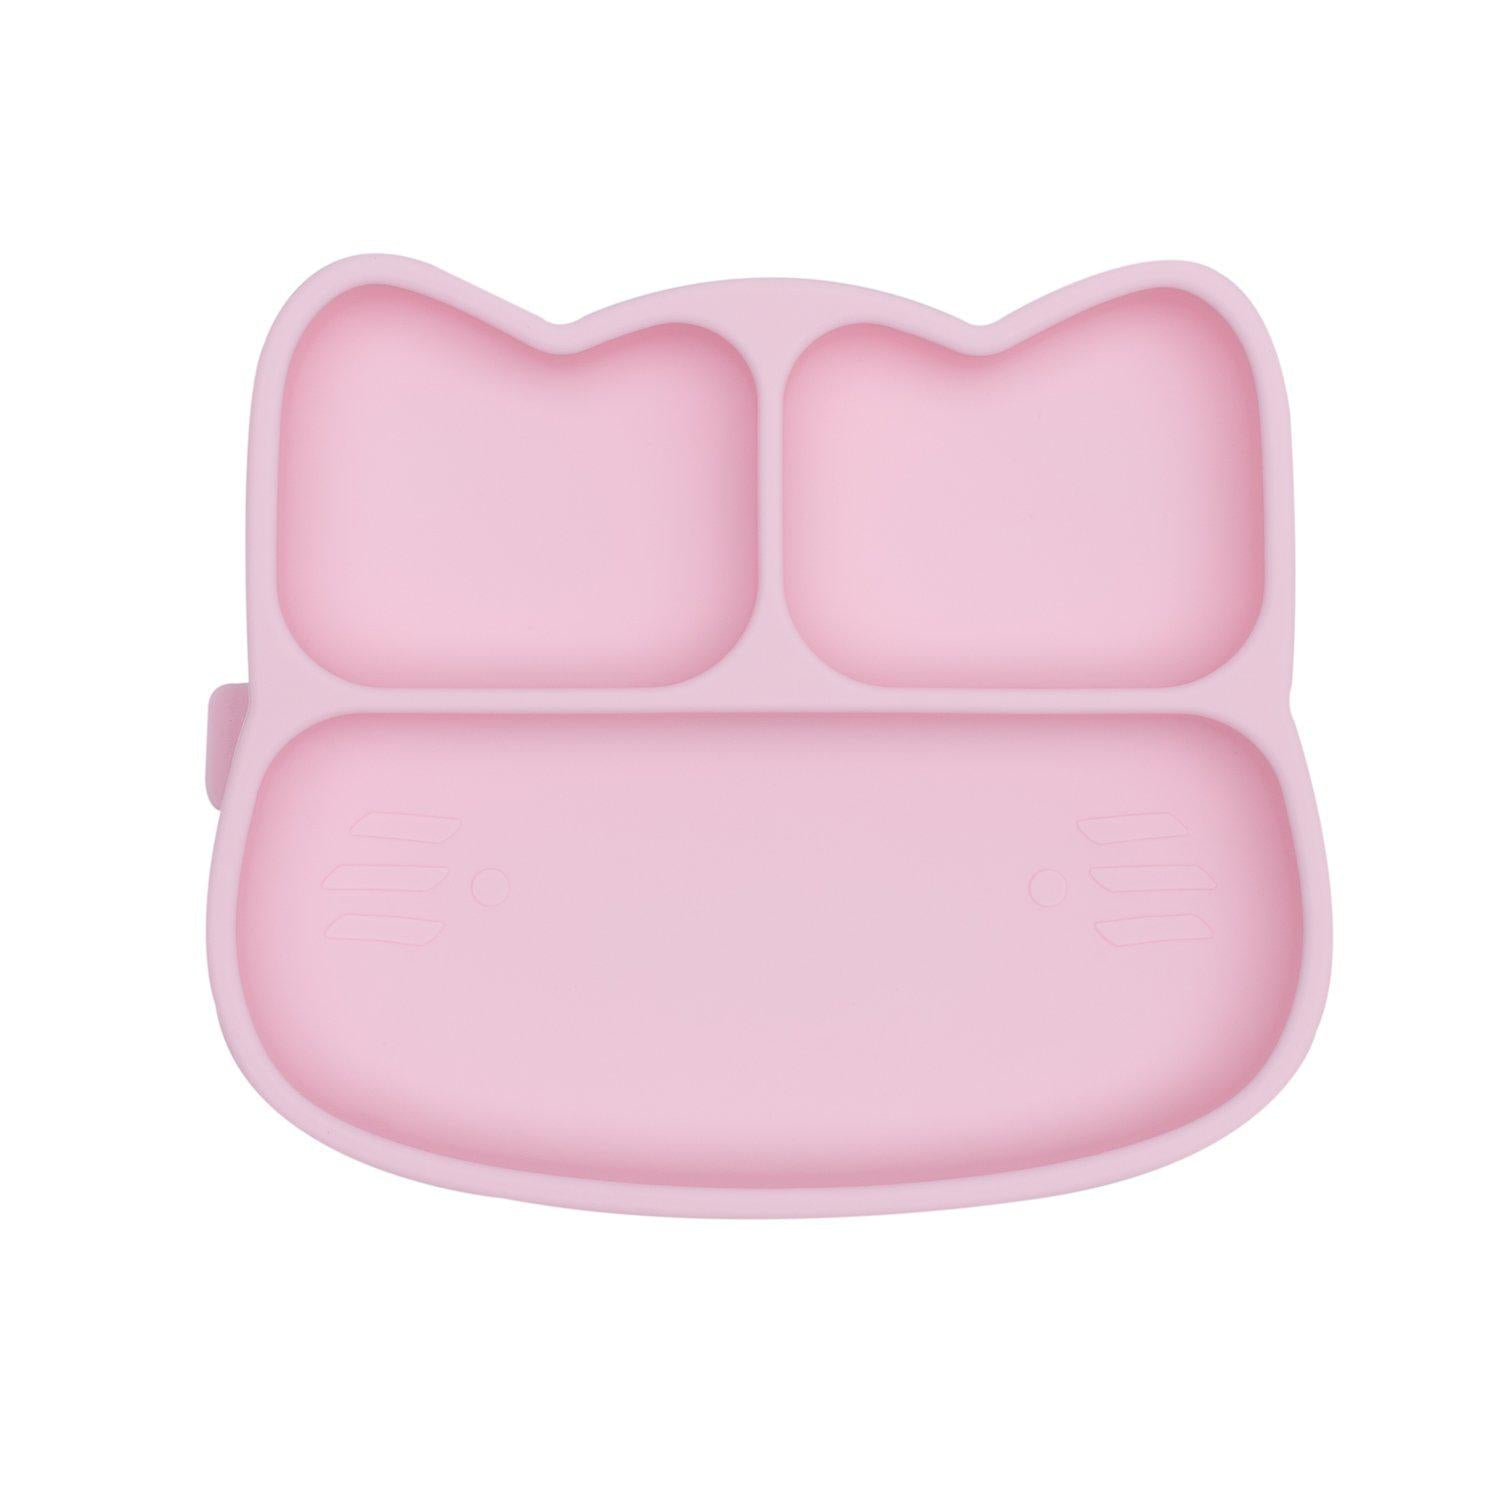 We Might Be Tiny - Cat Stickie Plate - Powder Pink-BabyDonkie